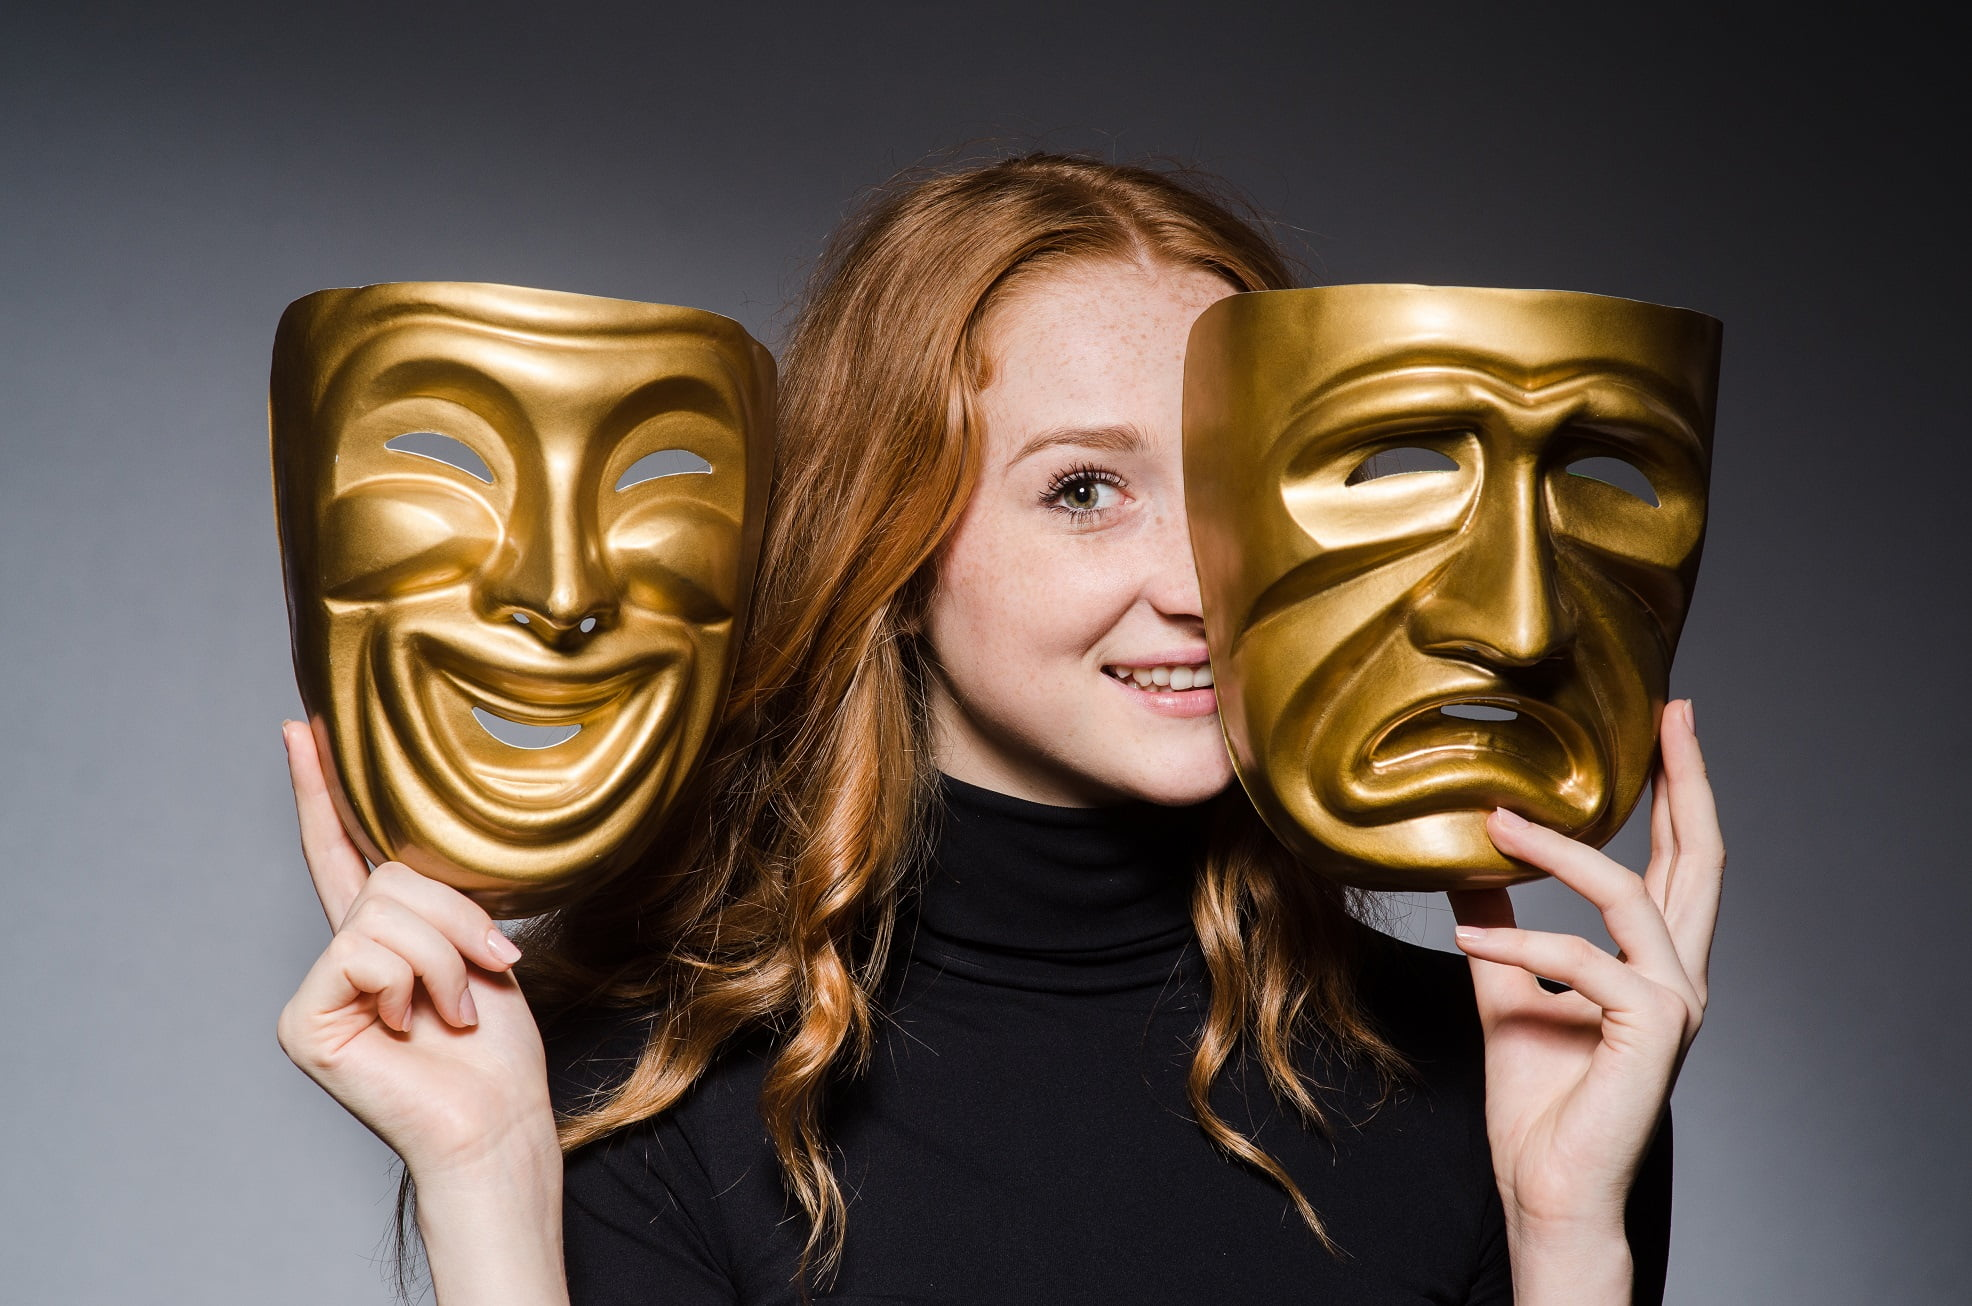 redhead woman with two theatre masks - comedy and tragedy